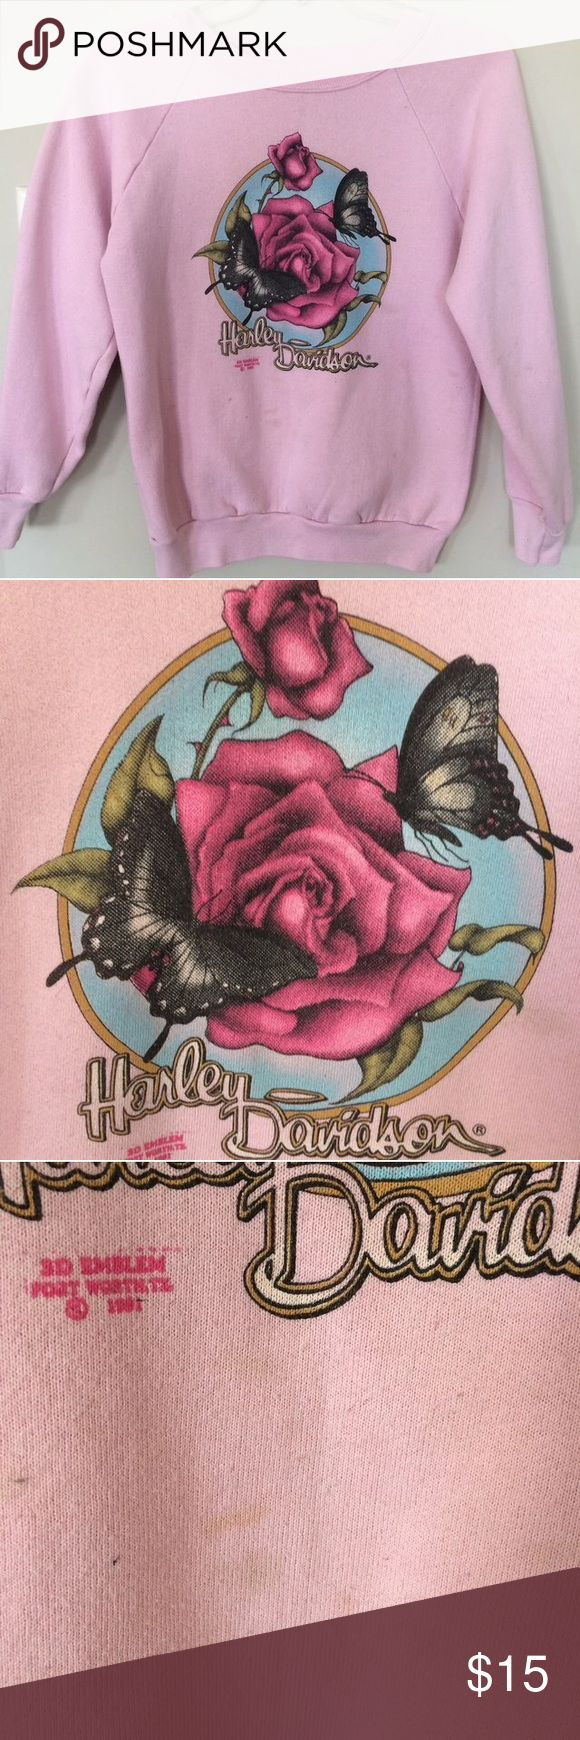 Harley Davidson sweatshirt Worn Harley Davidson pink floral sweatshirt. Love this so much, just too small. Slight stain on bottom. Size small but fits like an xsmall. Tops Sweatshirts & Hoodies